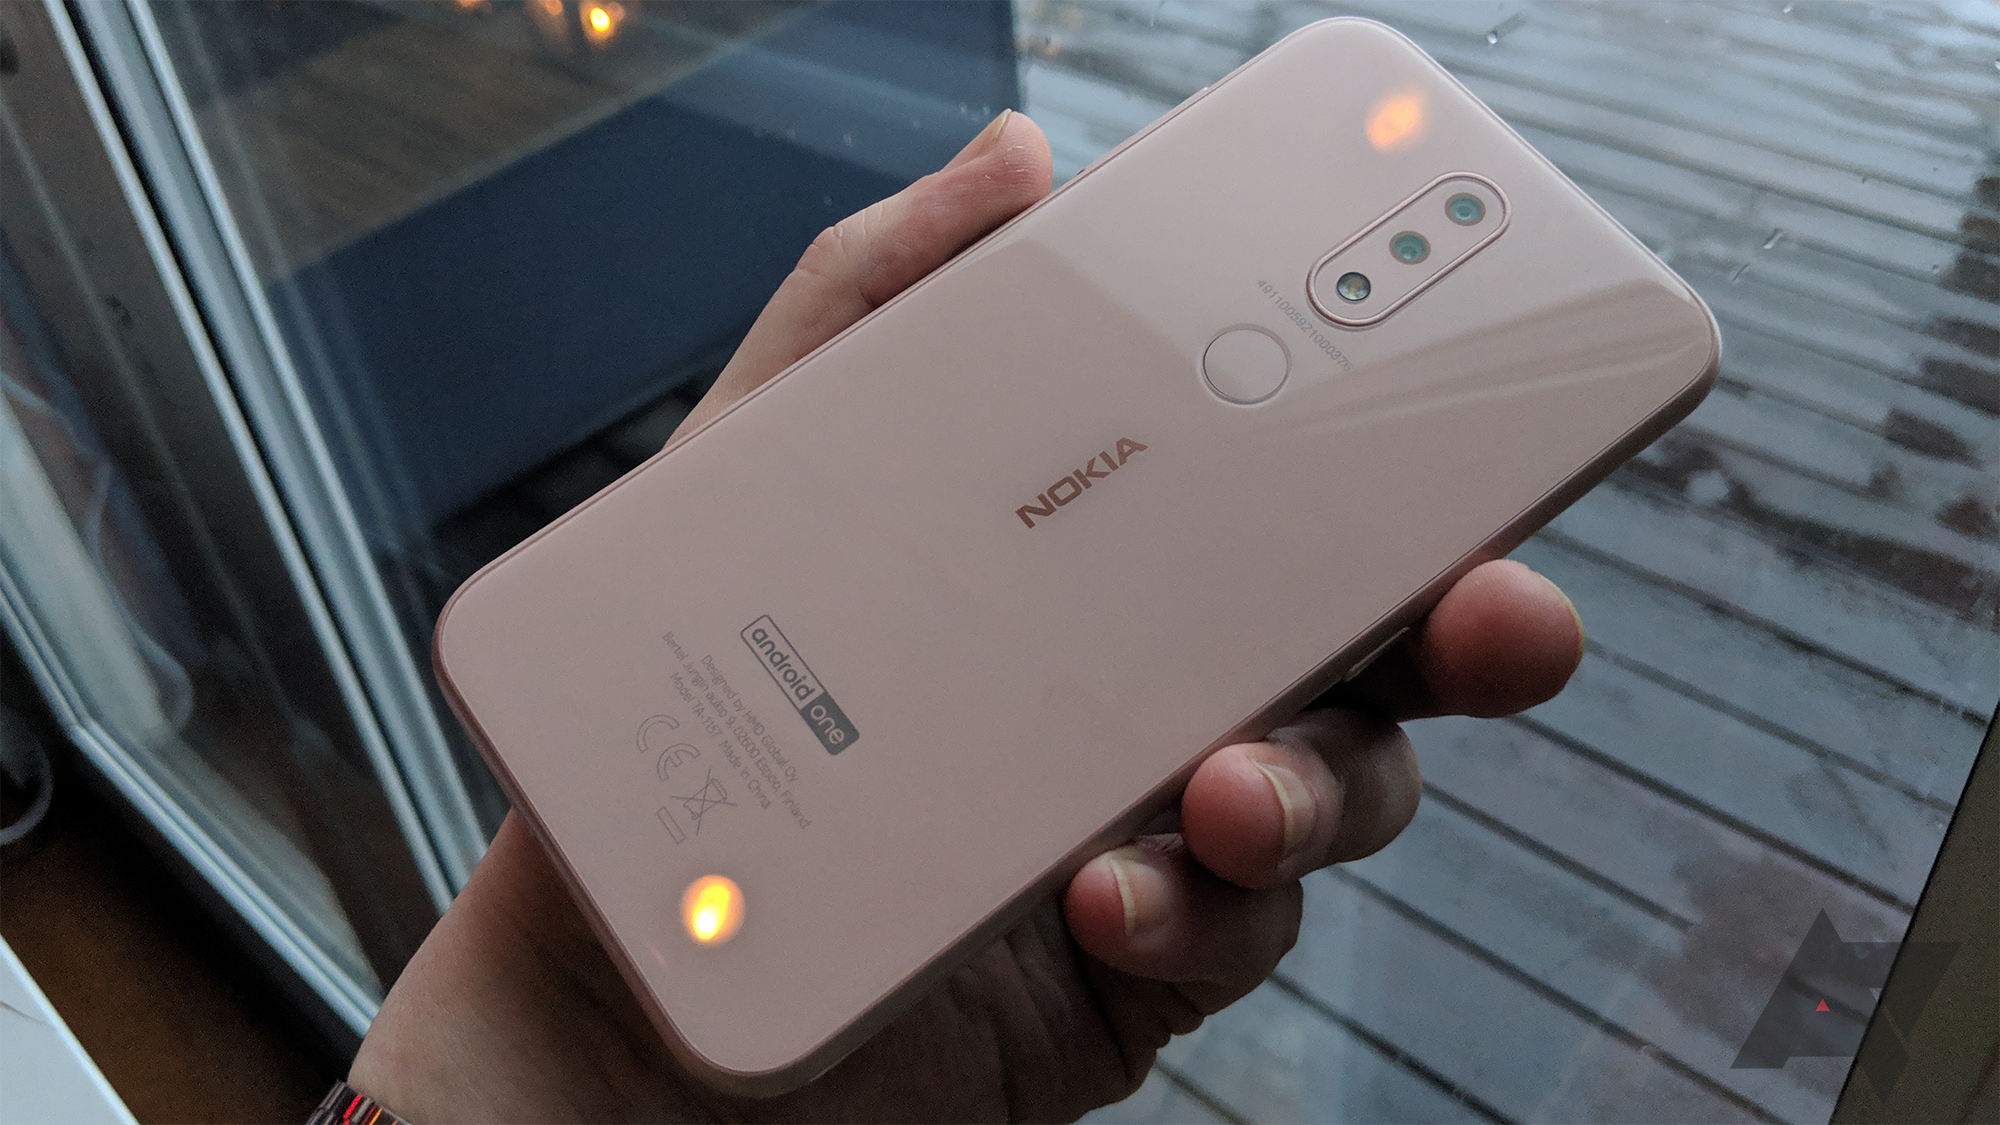 Nokia 4 2 Available For Pre Order In The Us For 189 Ships May 14